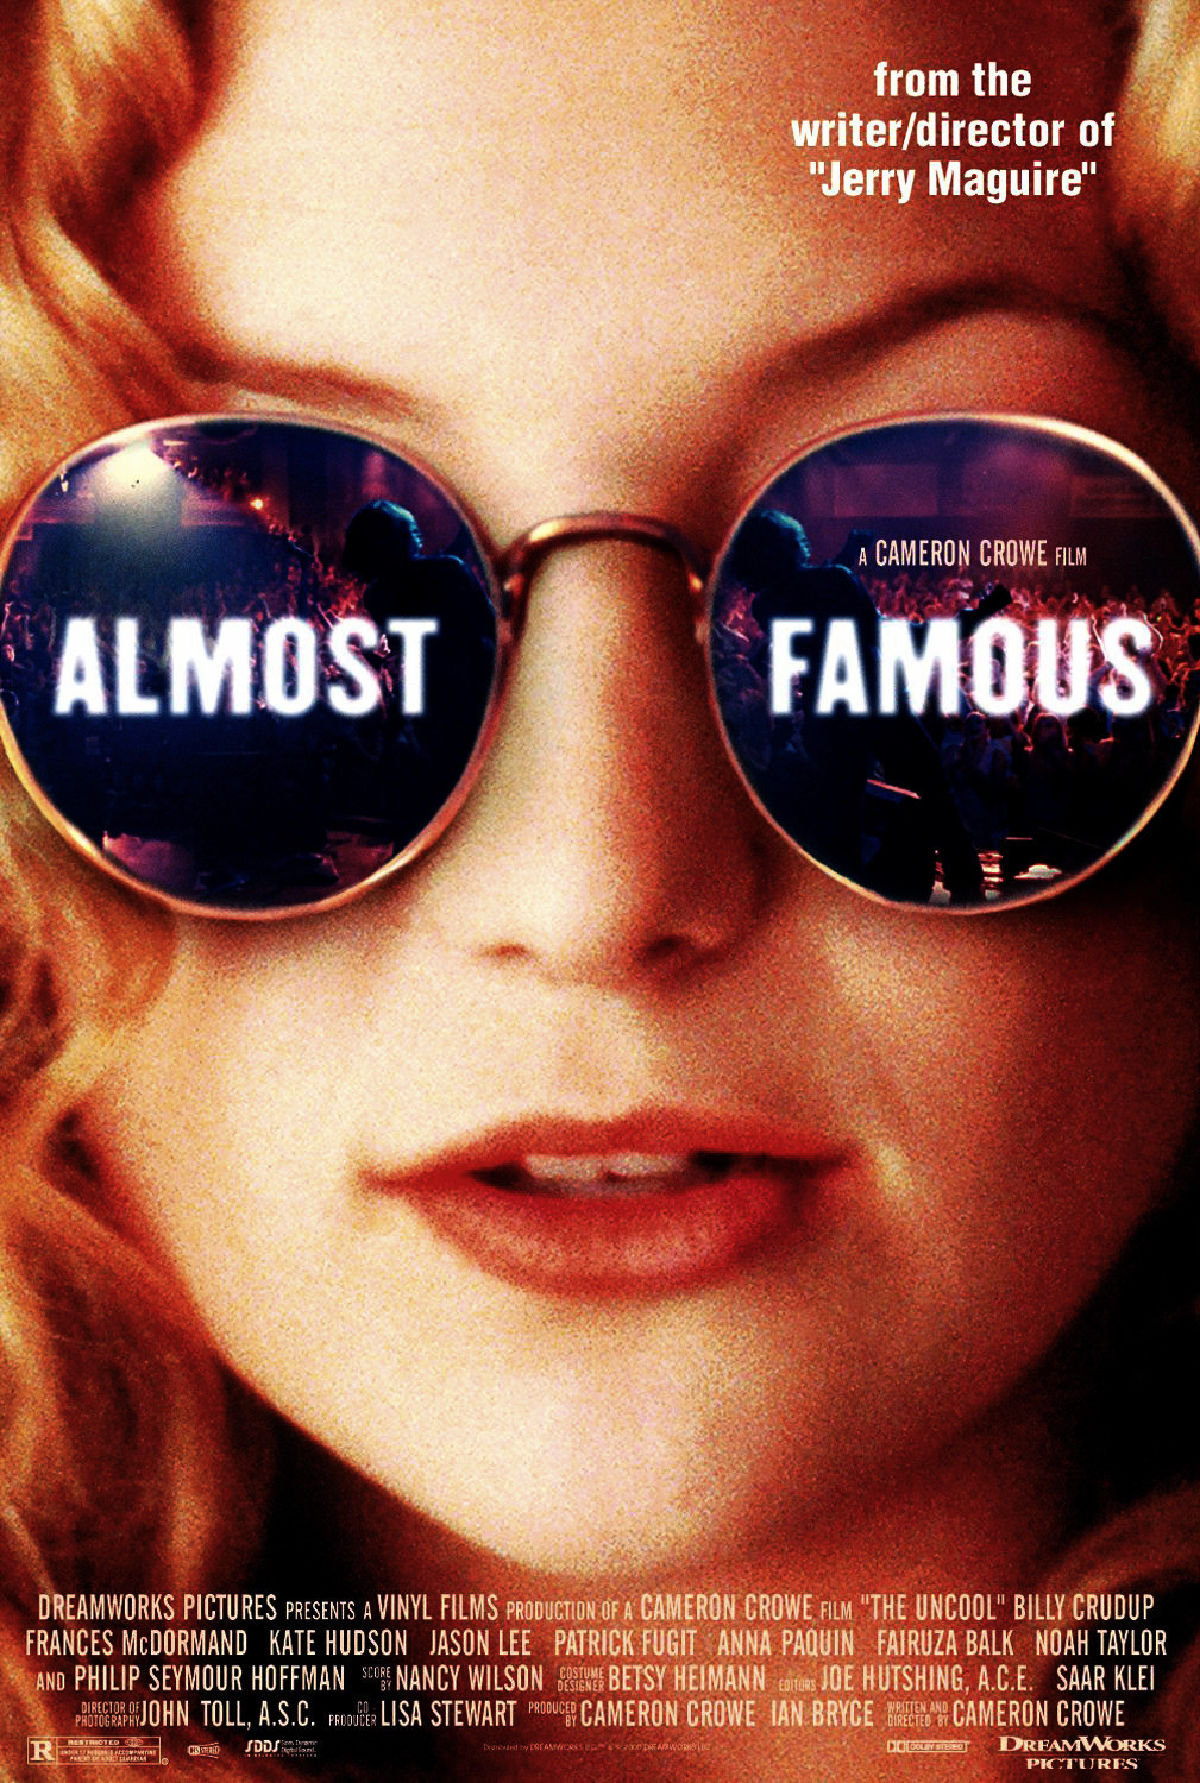 'Almost Famous' movie poster